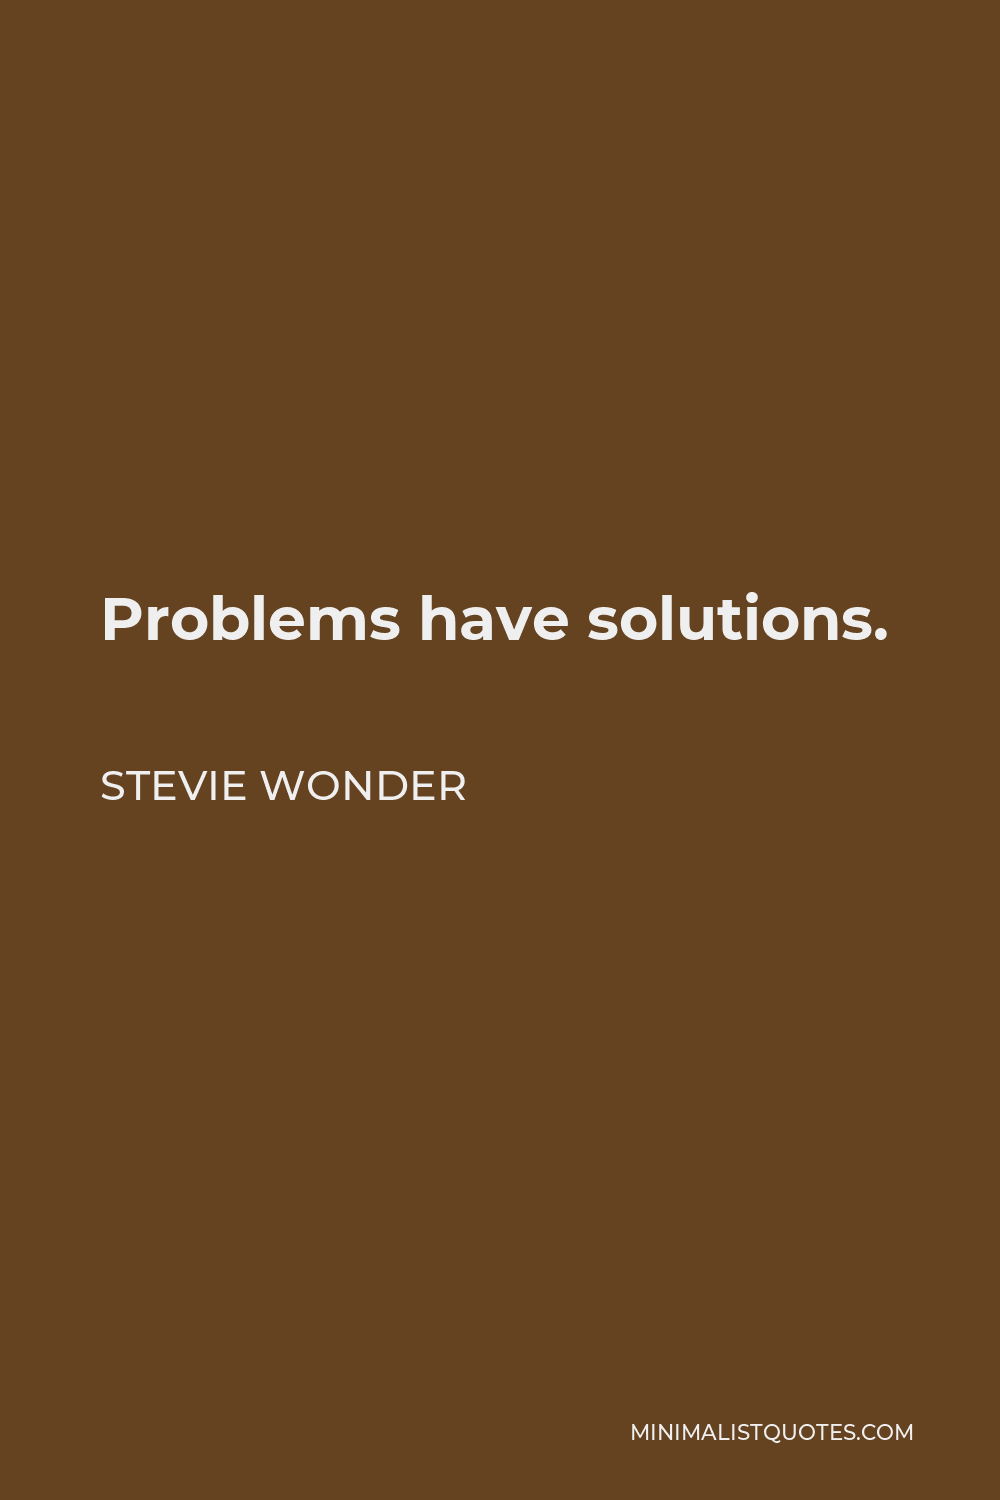 Stevie Wonder Quote - Problems have solutions.